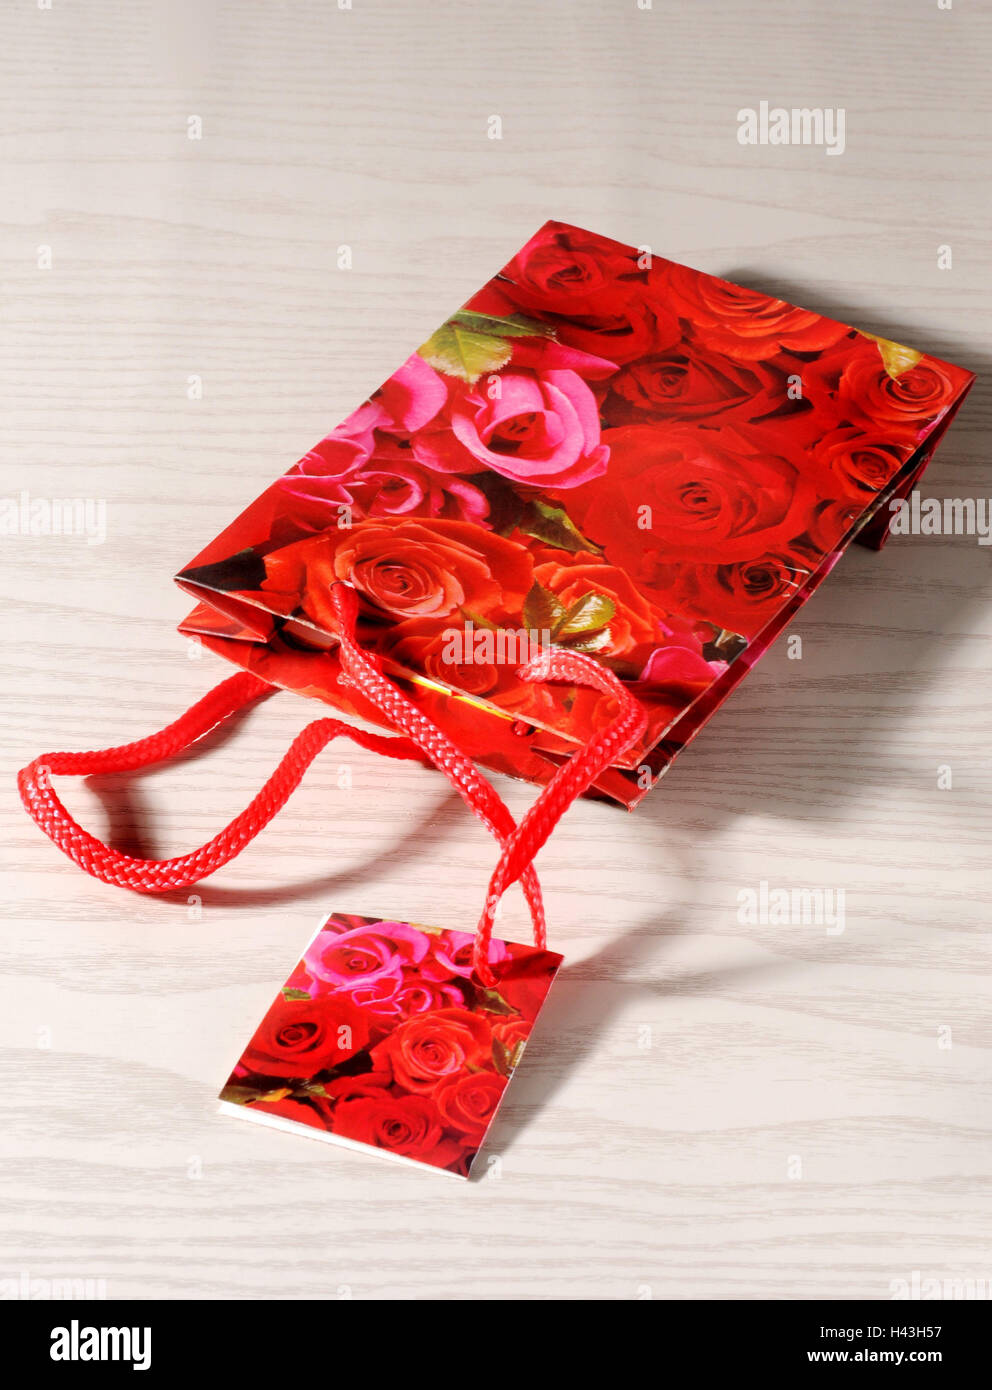 ... Gift Envelope, Carrier Bag, Pack, Roses, Floral Design, Red, Trailer,  Plays Cards, Conception, Present, Geburtsag, Valentinstag, Motheru0027s Day,  Studio,